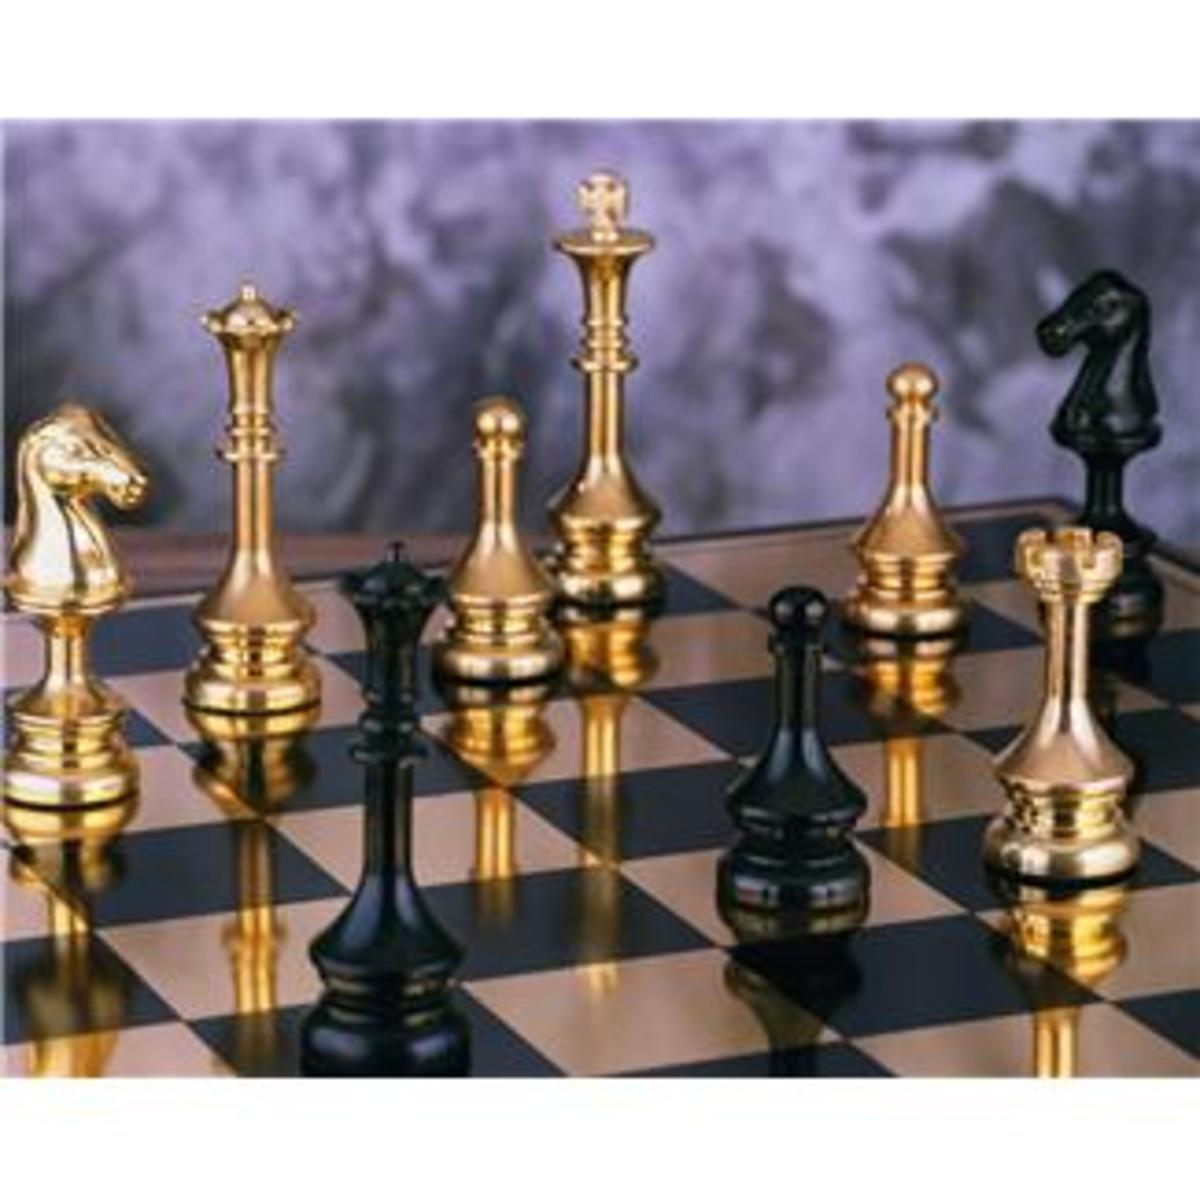 The Great Gift Chronicles: Chess, Anyone?